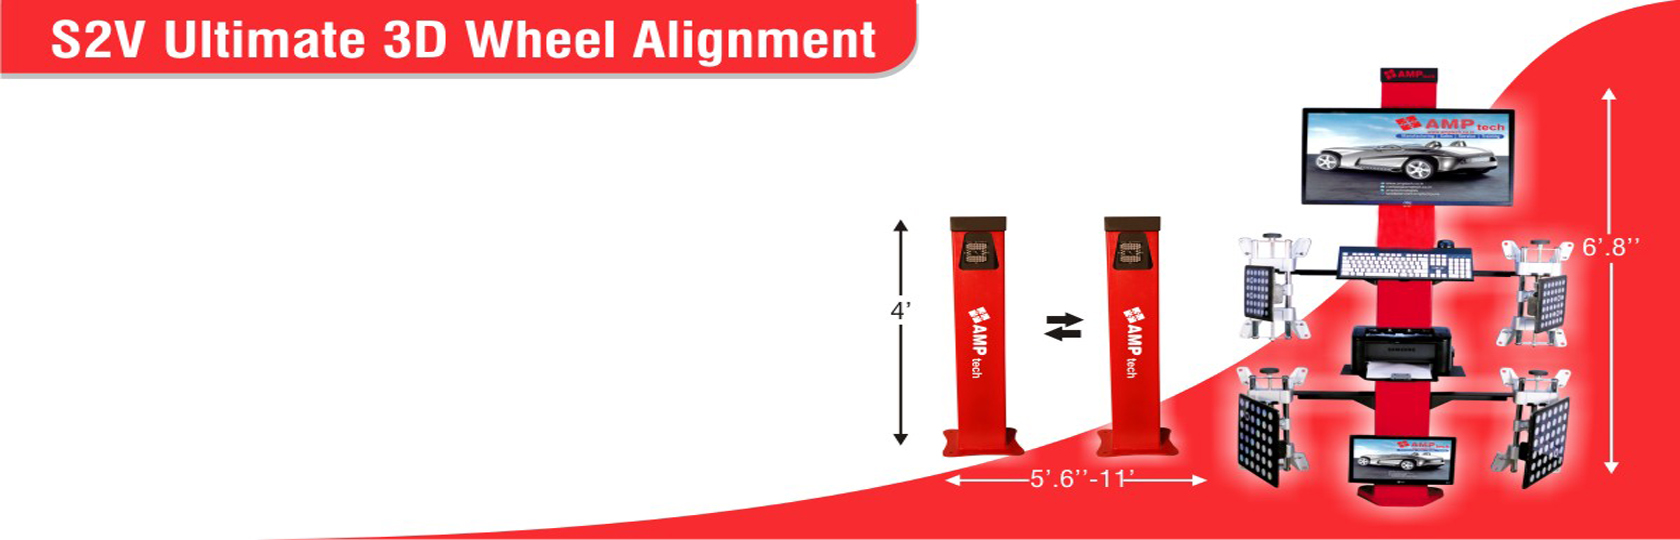 S2V-3D-wheel-alignment